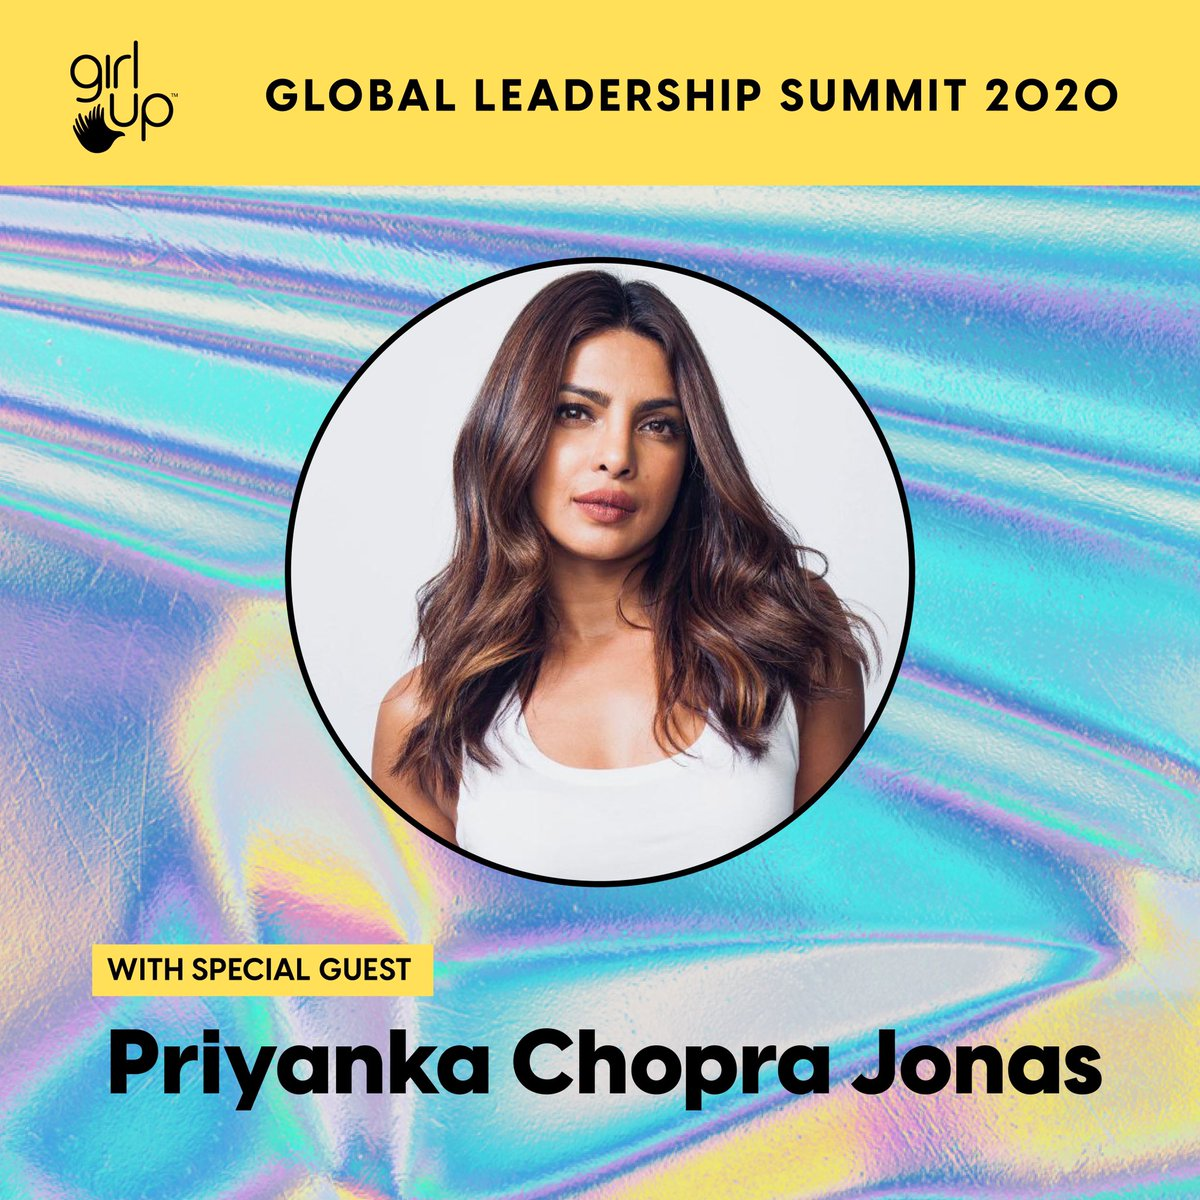 No matter their background, girls have the power to transform themselves, their communities, and the world around them. Join me for the virtual 2020 @GirlUp Leadership Summit, July 13-15 with some of the top female leaders! Get your ticketshttps://t.co/VJCZLNae33 #GirlsLead20 https://t.co/iu3Nr2hlyV